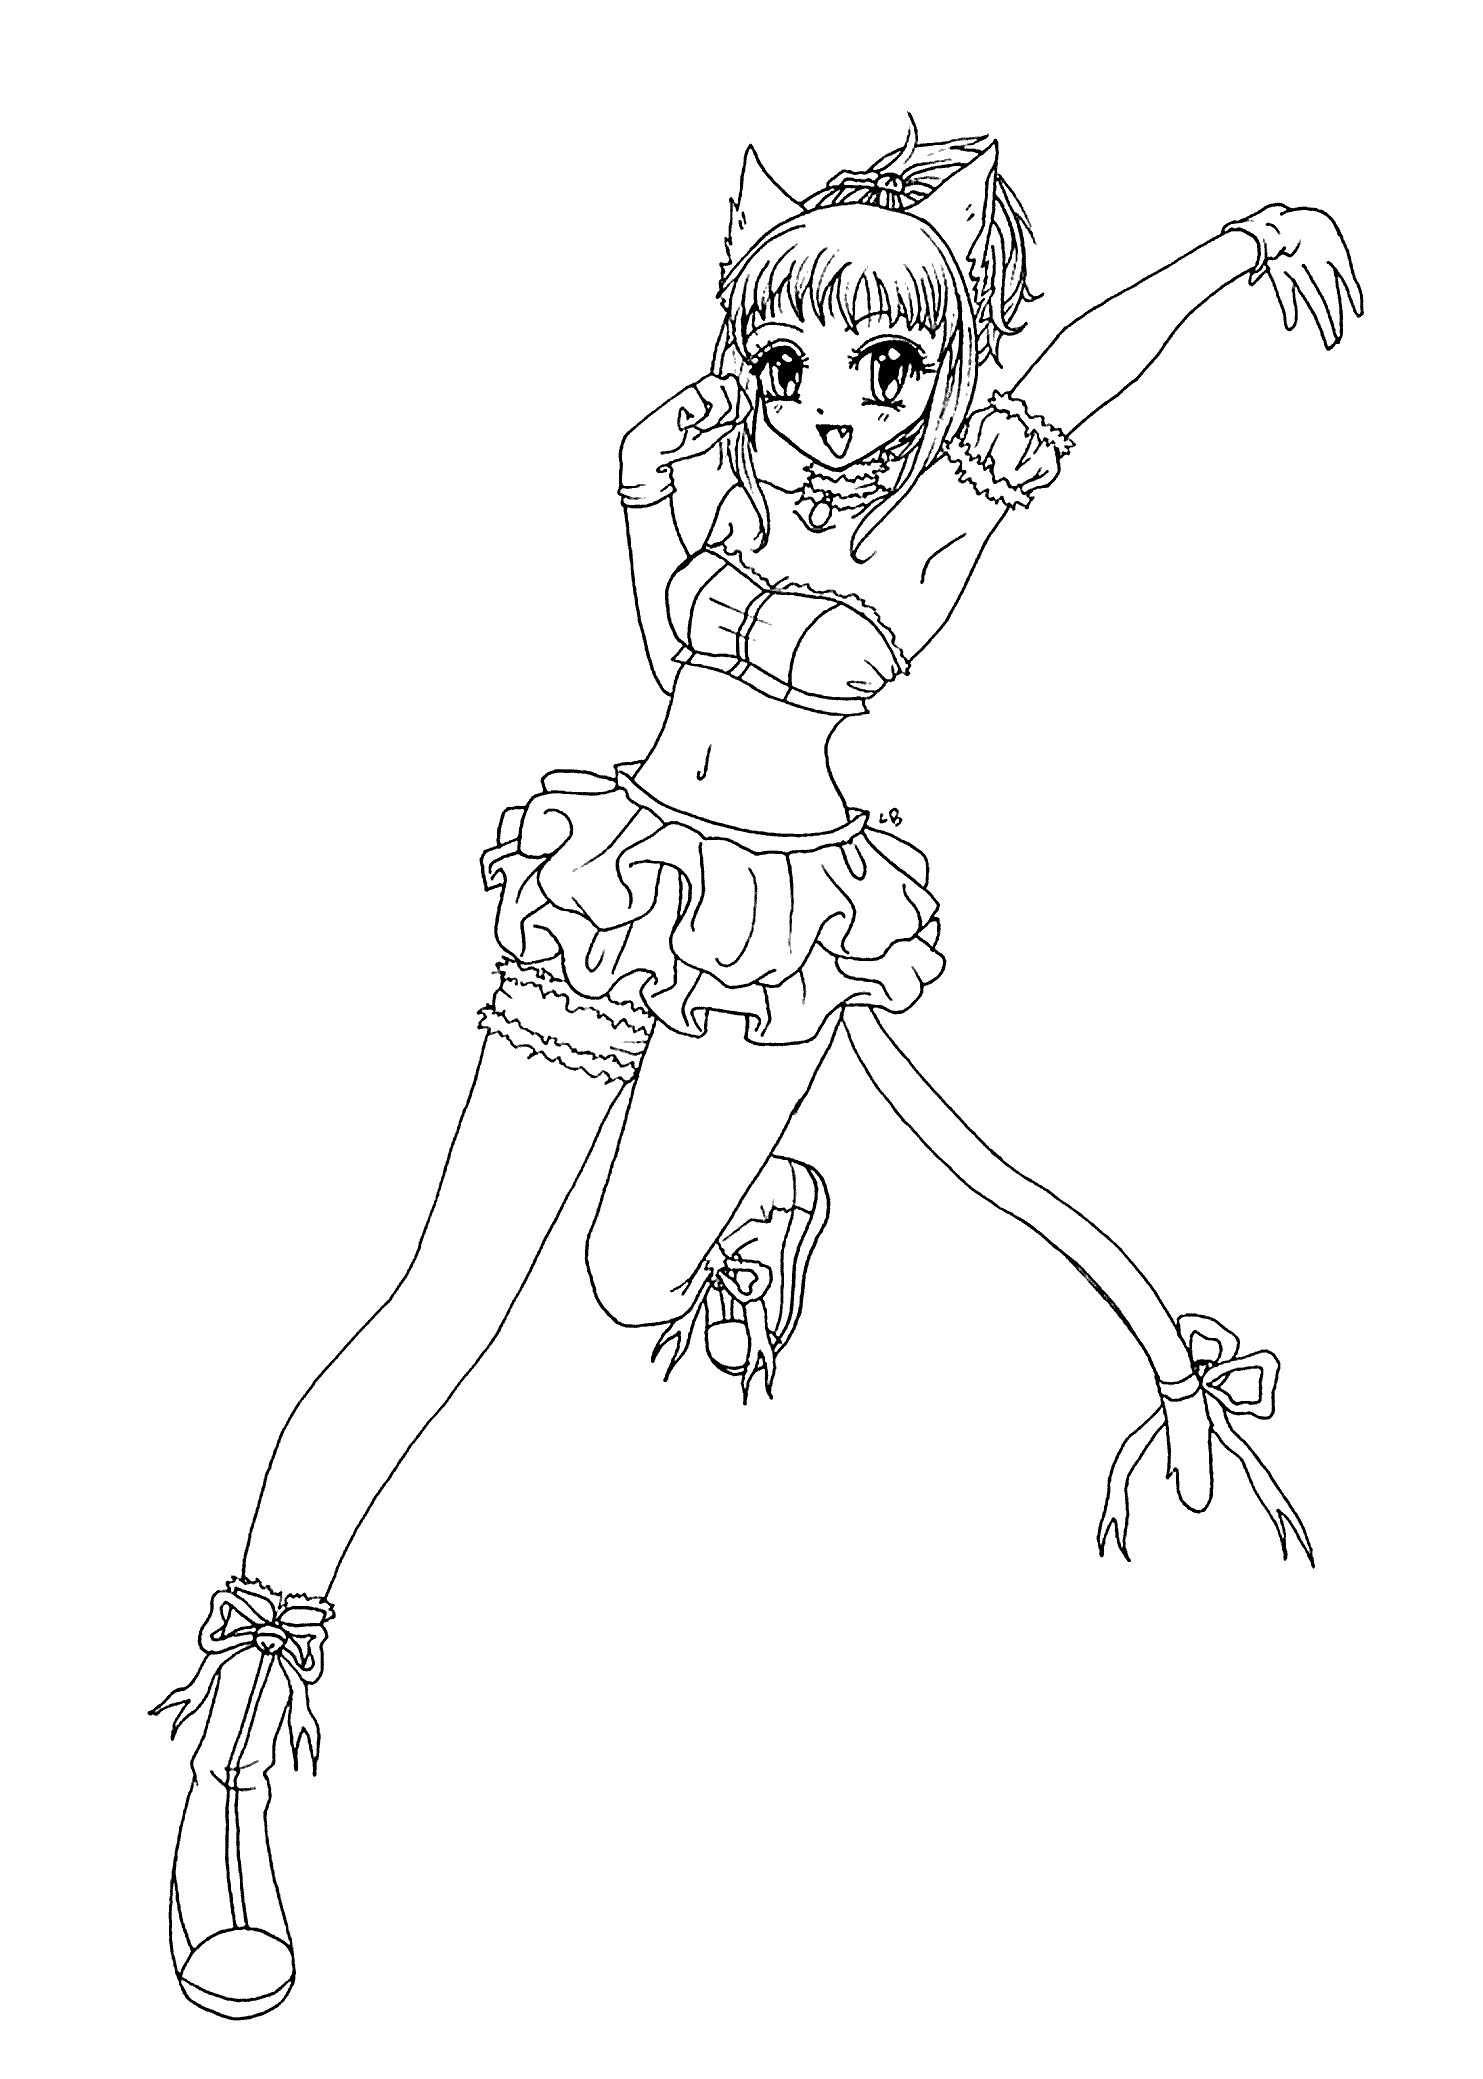 1483x2079 Anime Cat Girl Coloring Pages Fresh In Cat Girl Coloring Page